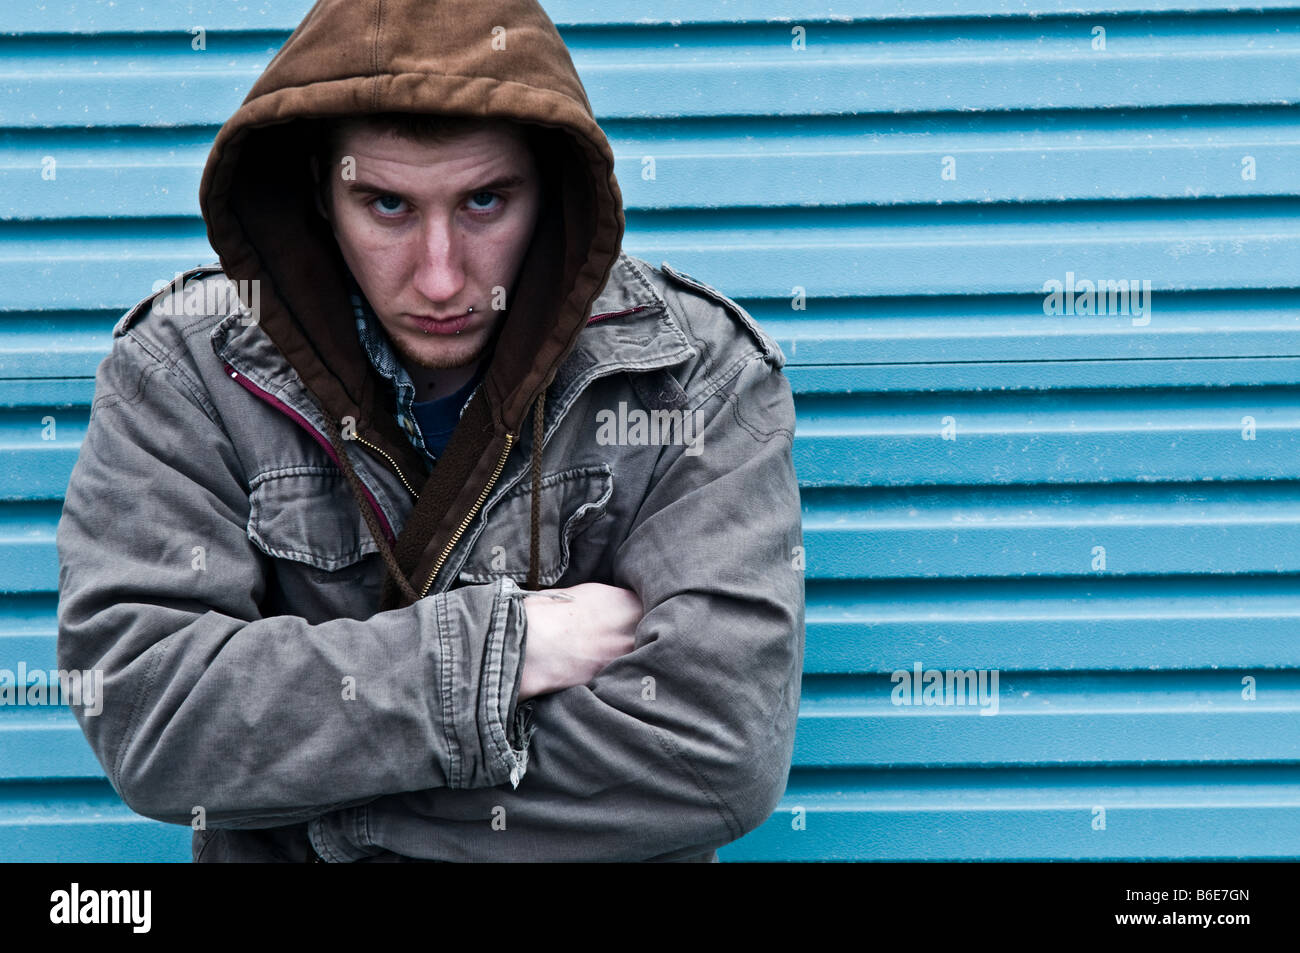 Young man wearing a hooded jacket alone and isolated huddled up looking withdrawn - Stock Image